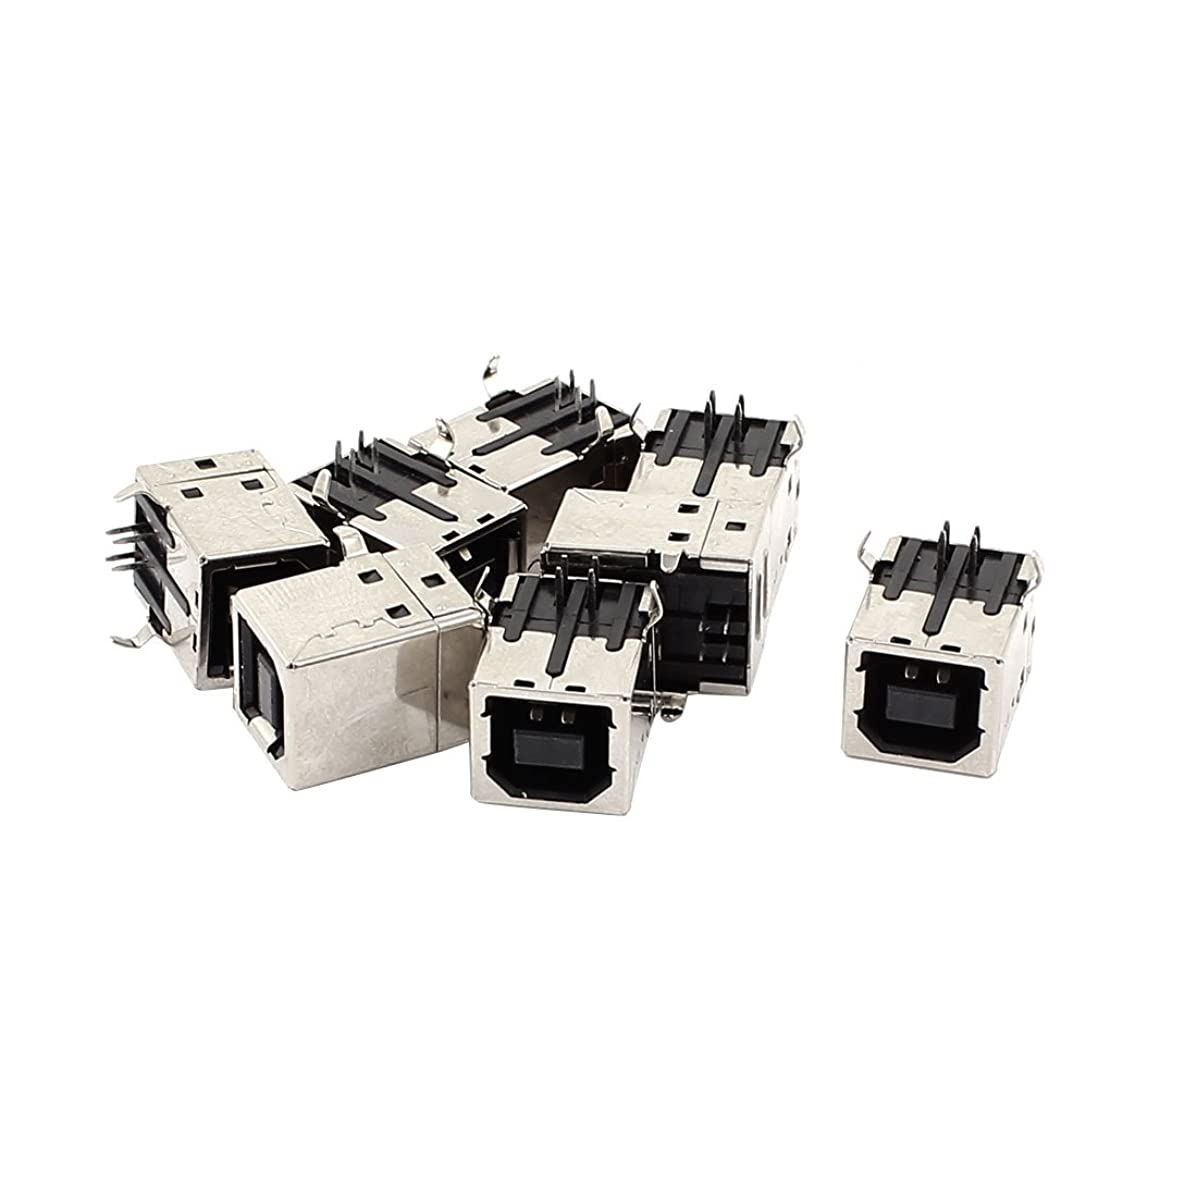 uxcell 8pcs PCB Mount USB 2.0 Type B Female Socket Printer Connector Adapter